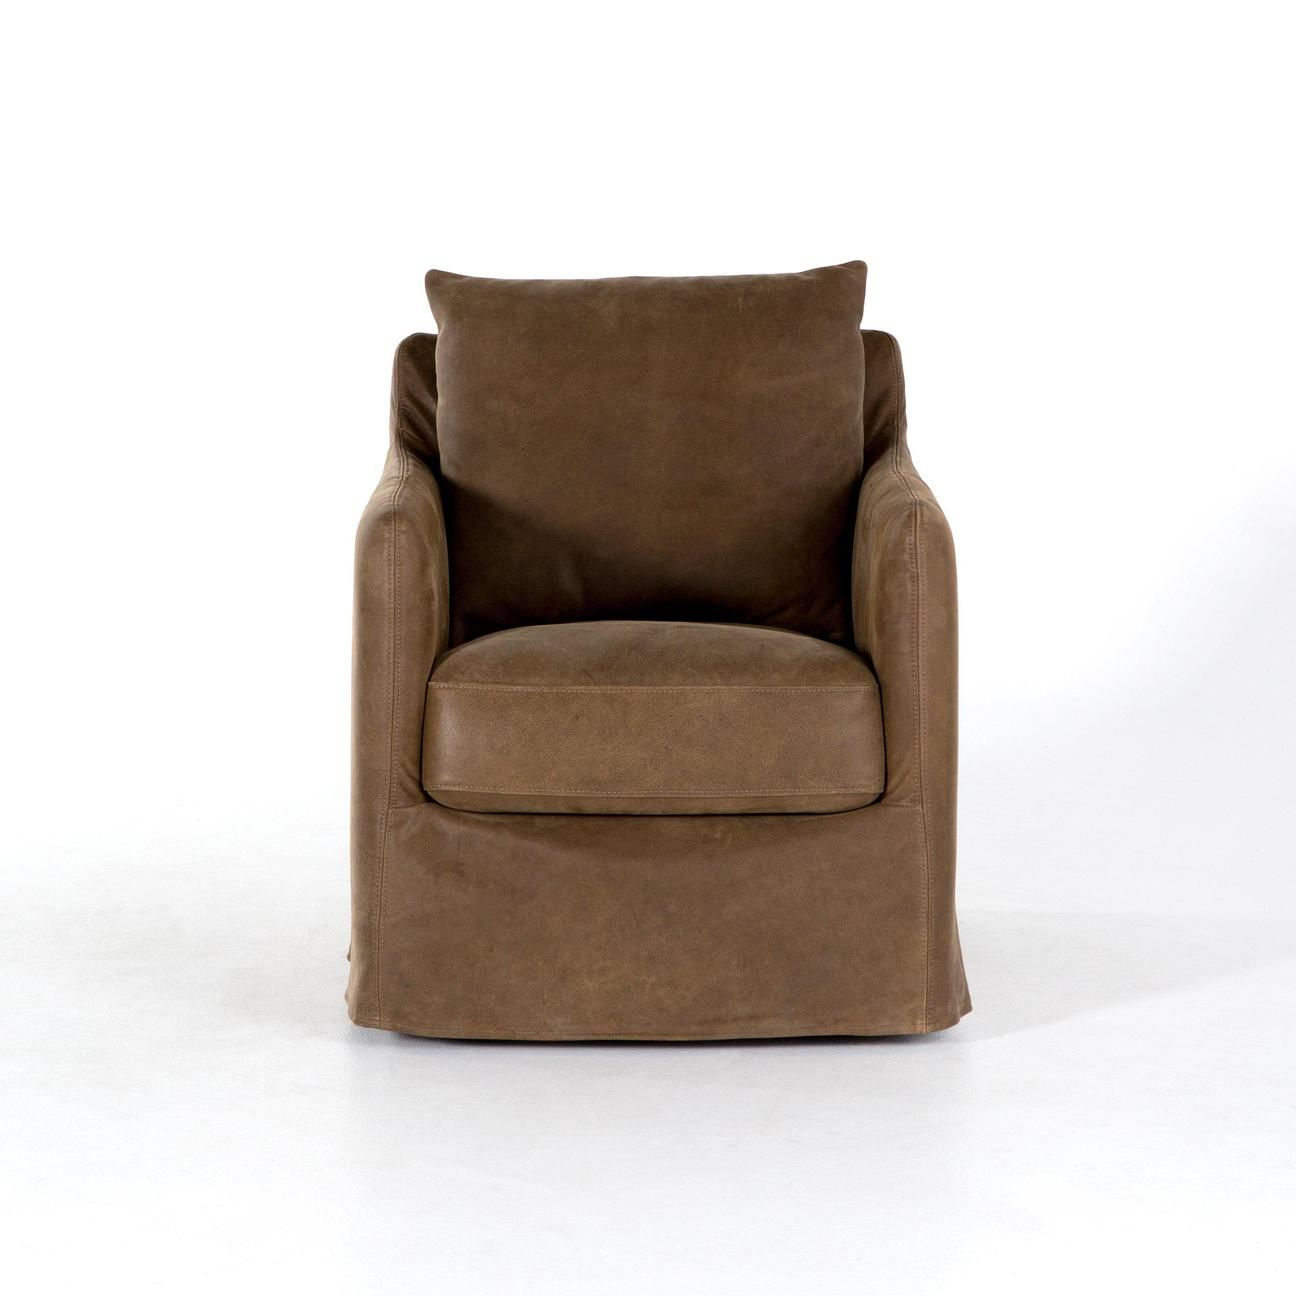 Kensington Collection Banks Top Grain Leather Swivel Chair: Umber Regarding Umber Grey Swivel Accent Chairs (Photo 2 of 25)